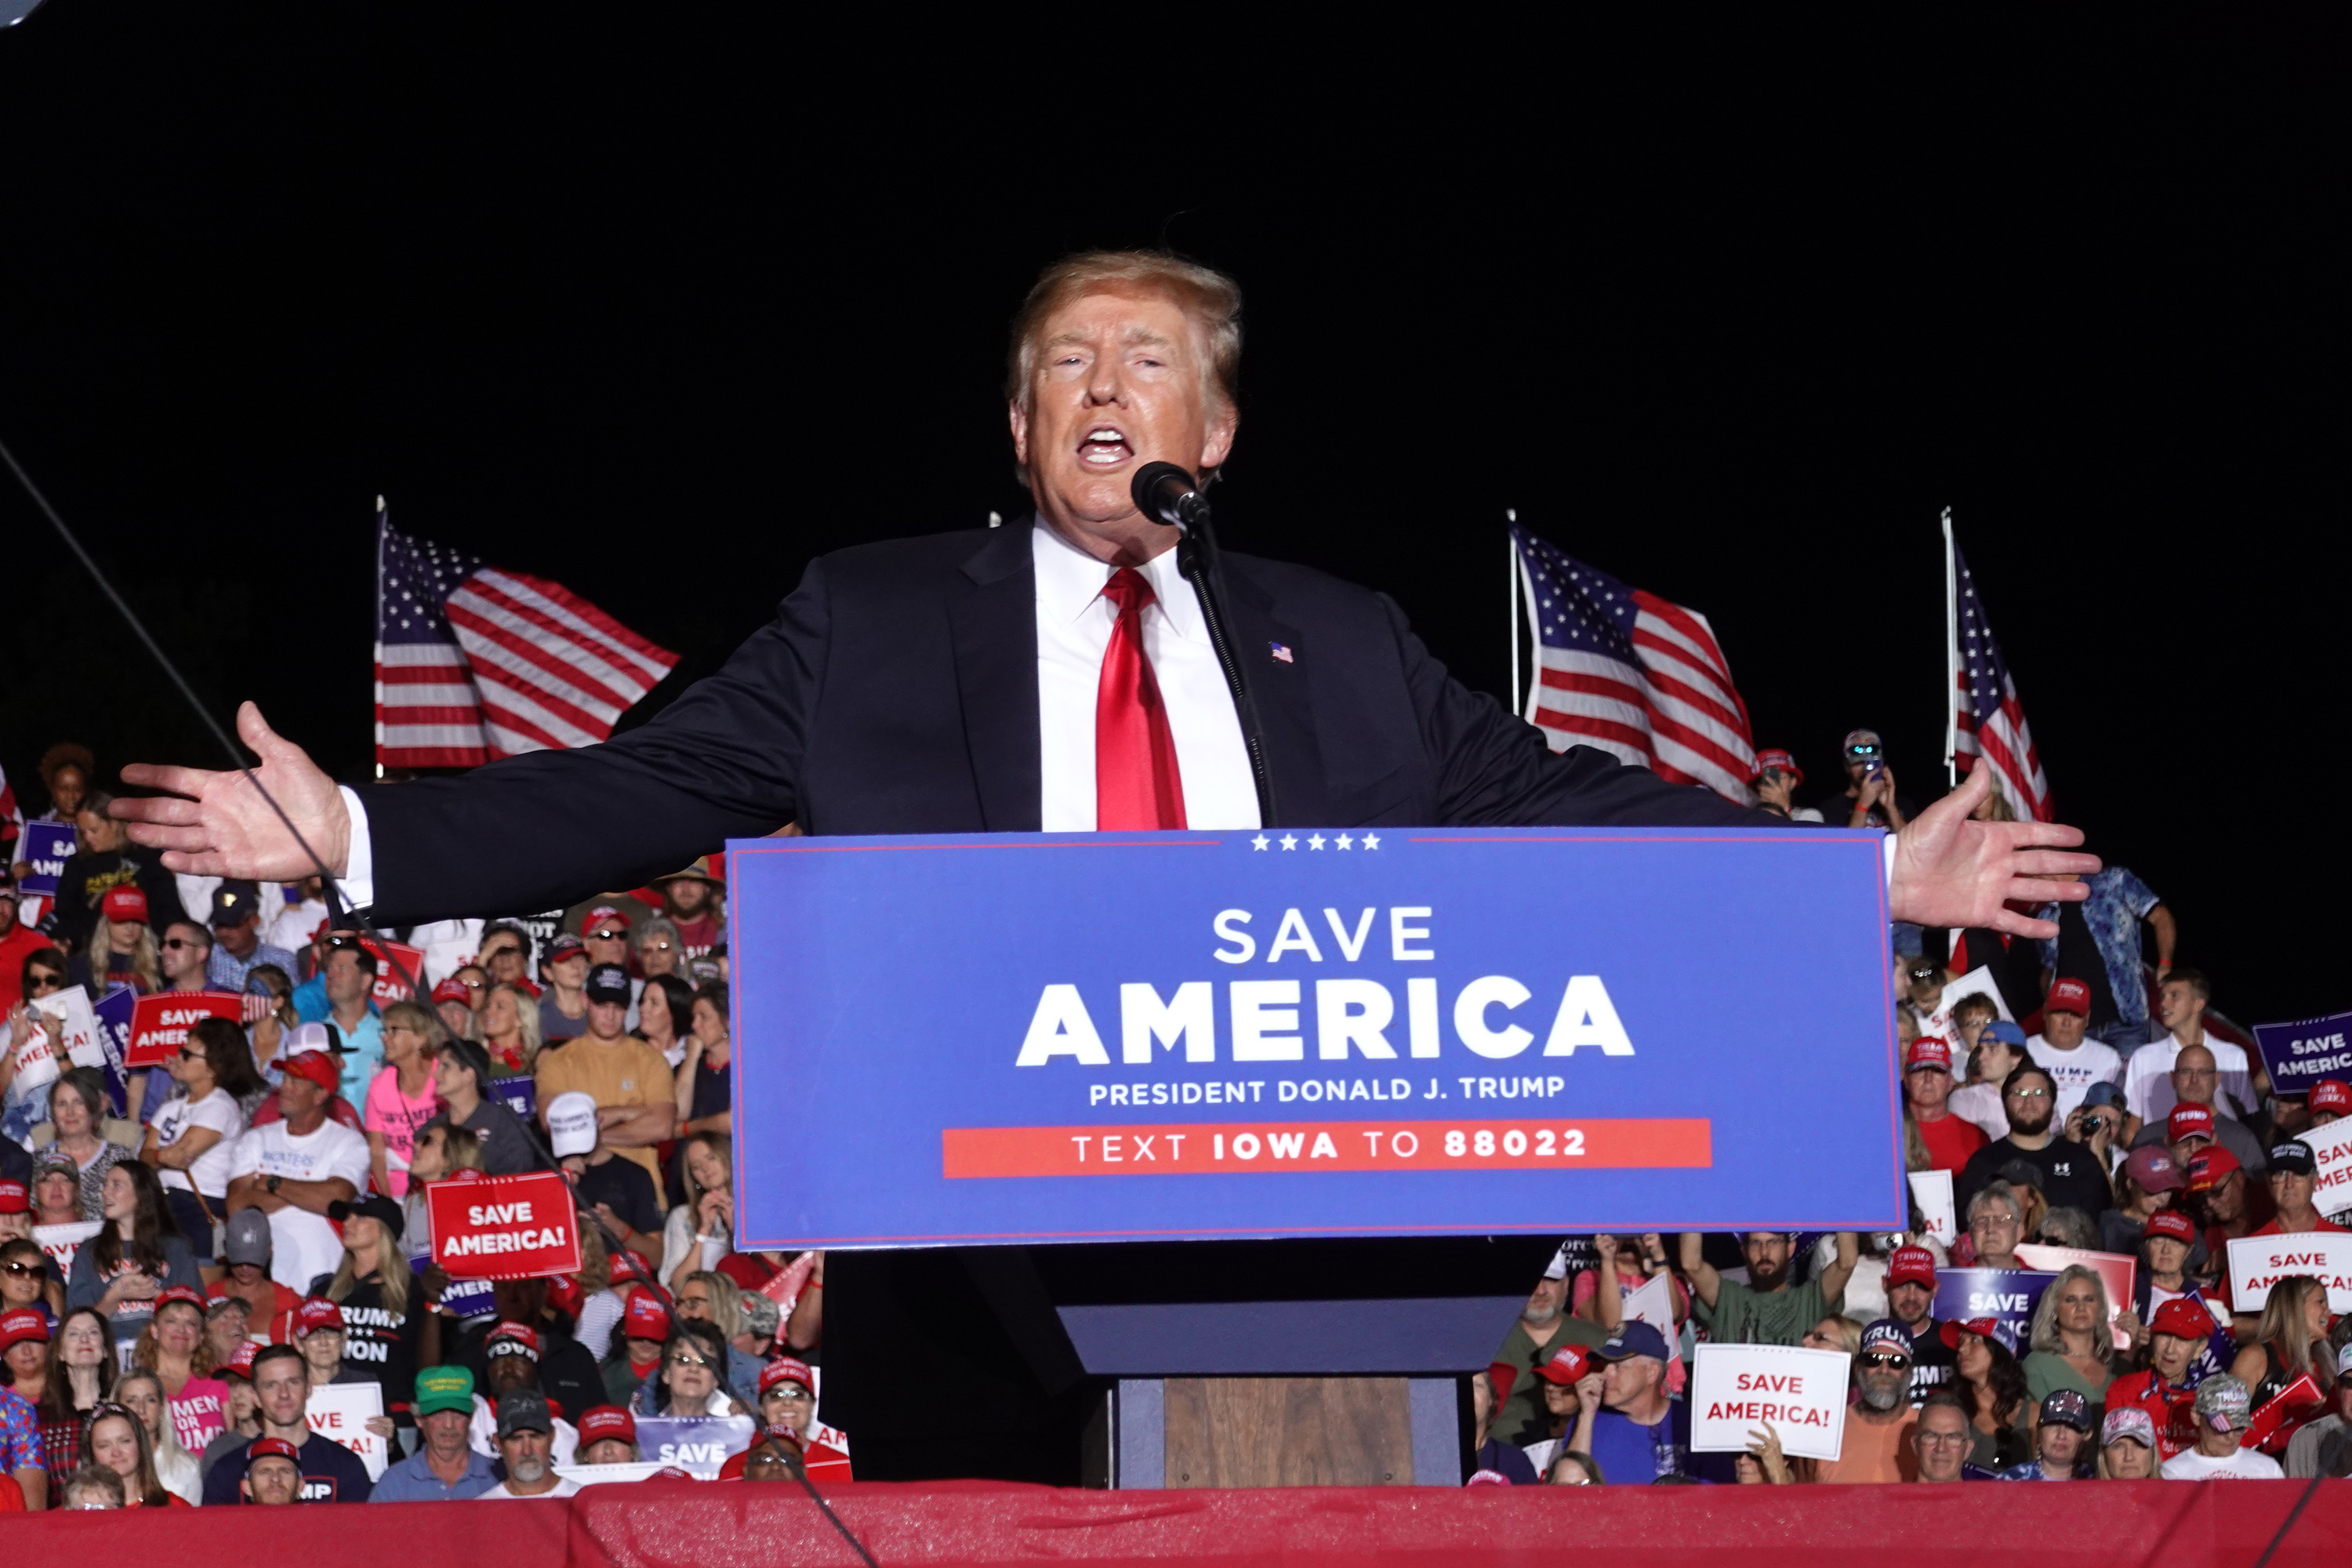 President Donald Trump speaks to supporters during a rally at the Iowa State Fairgrounds on October 09, 2021 in Des Moines, Iowa. This is Trump's first rally in Iowa since the 2020 election. (Photo by Scott Olson/Getty Images)